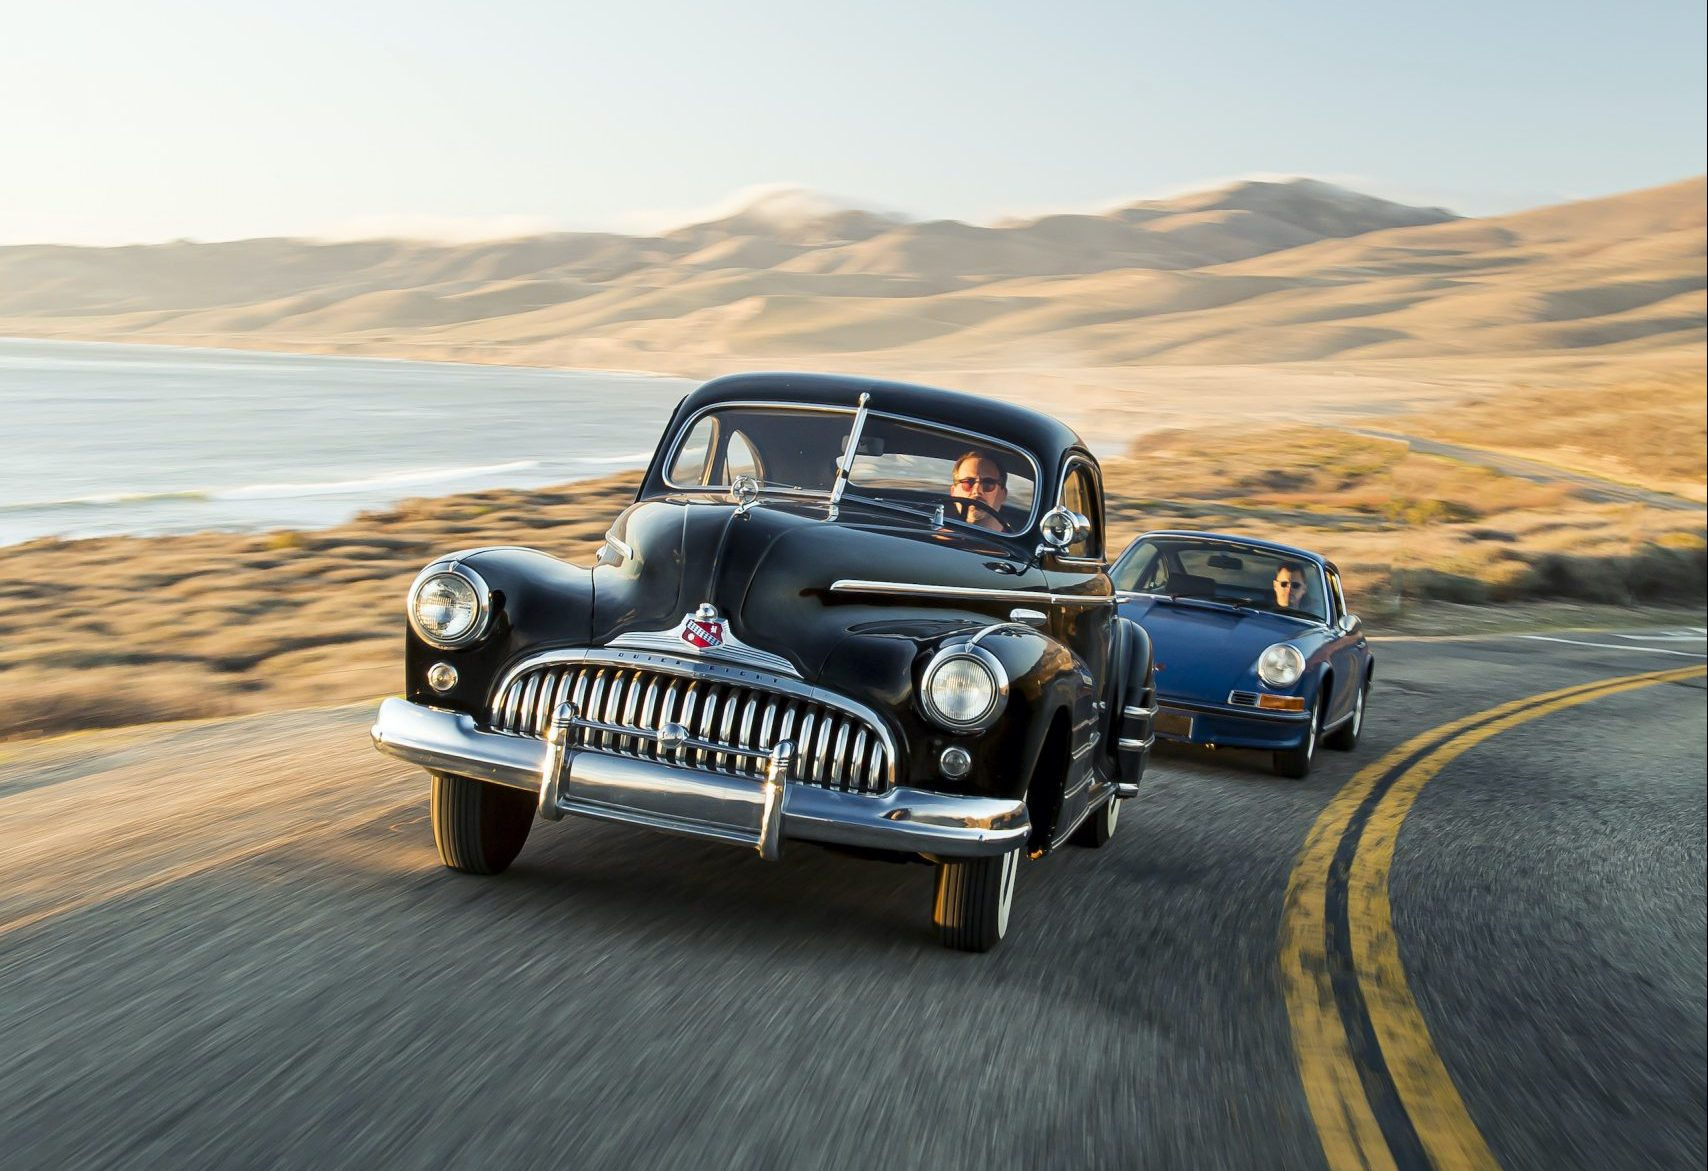 1946 Buick Special and 1970 Porsche 911 driving action vertical